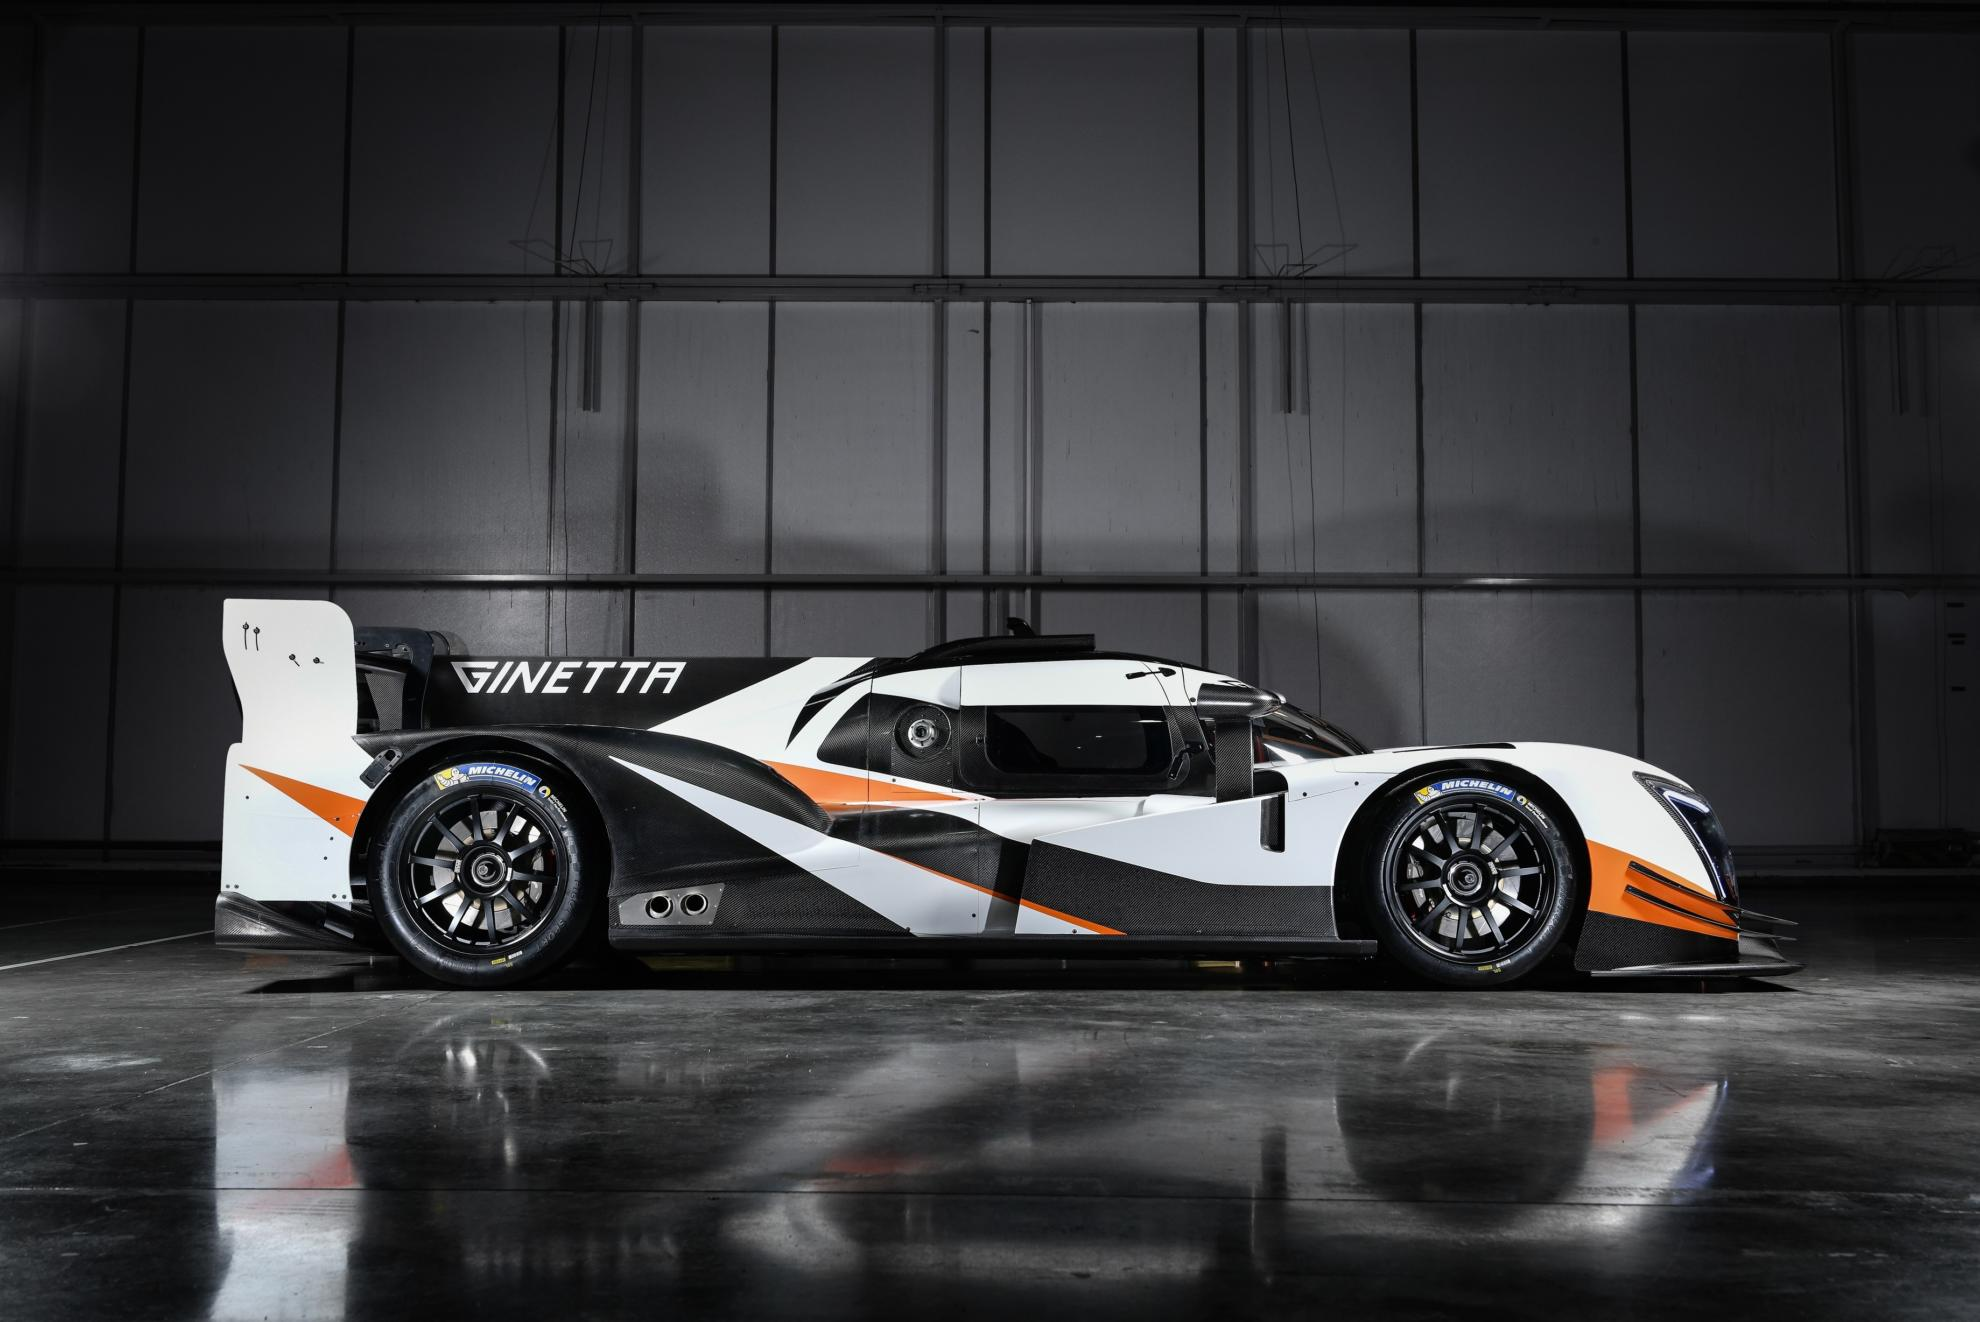 Ginetta Gears Up for Busy Week at Goodwood FOS and Great Yorkshire Show